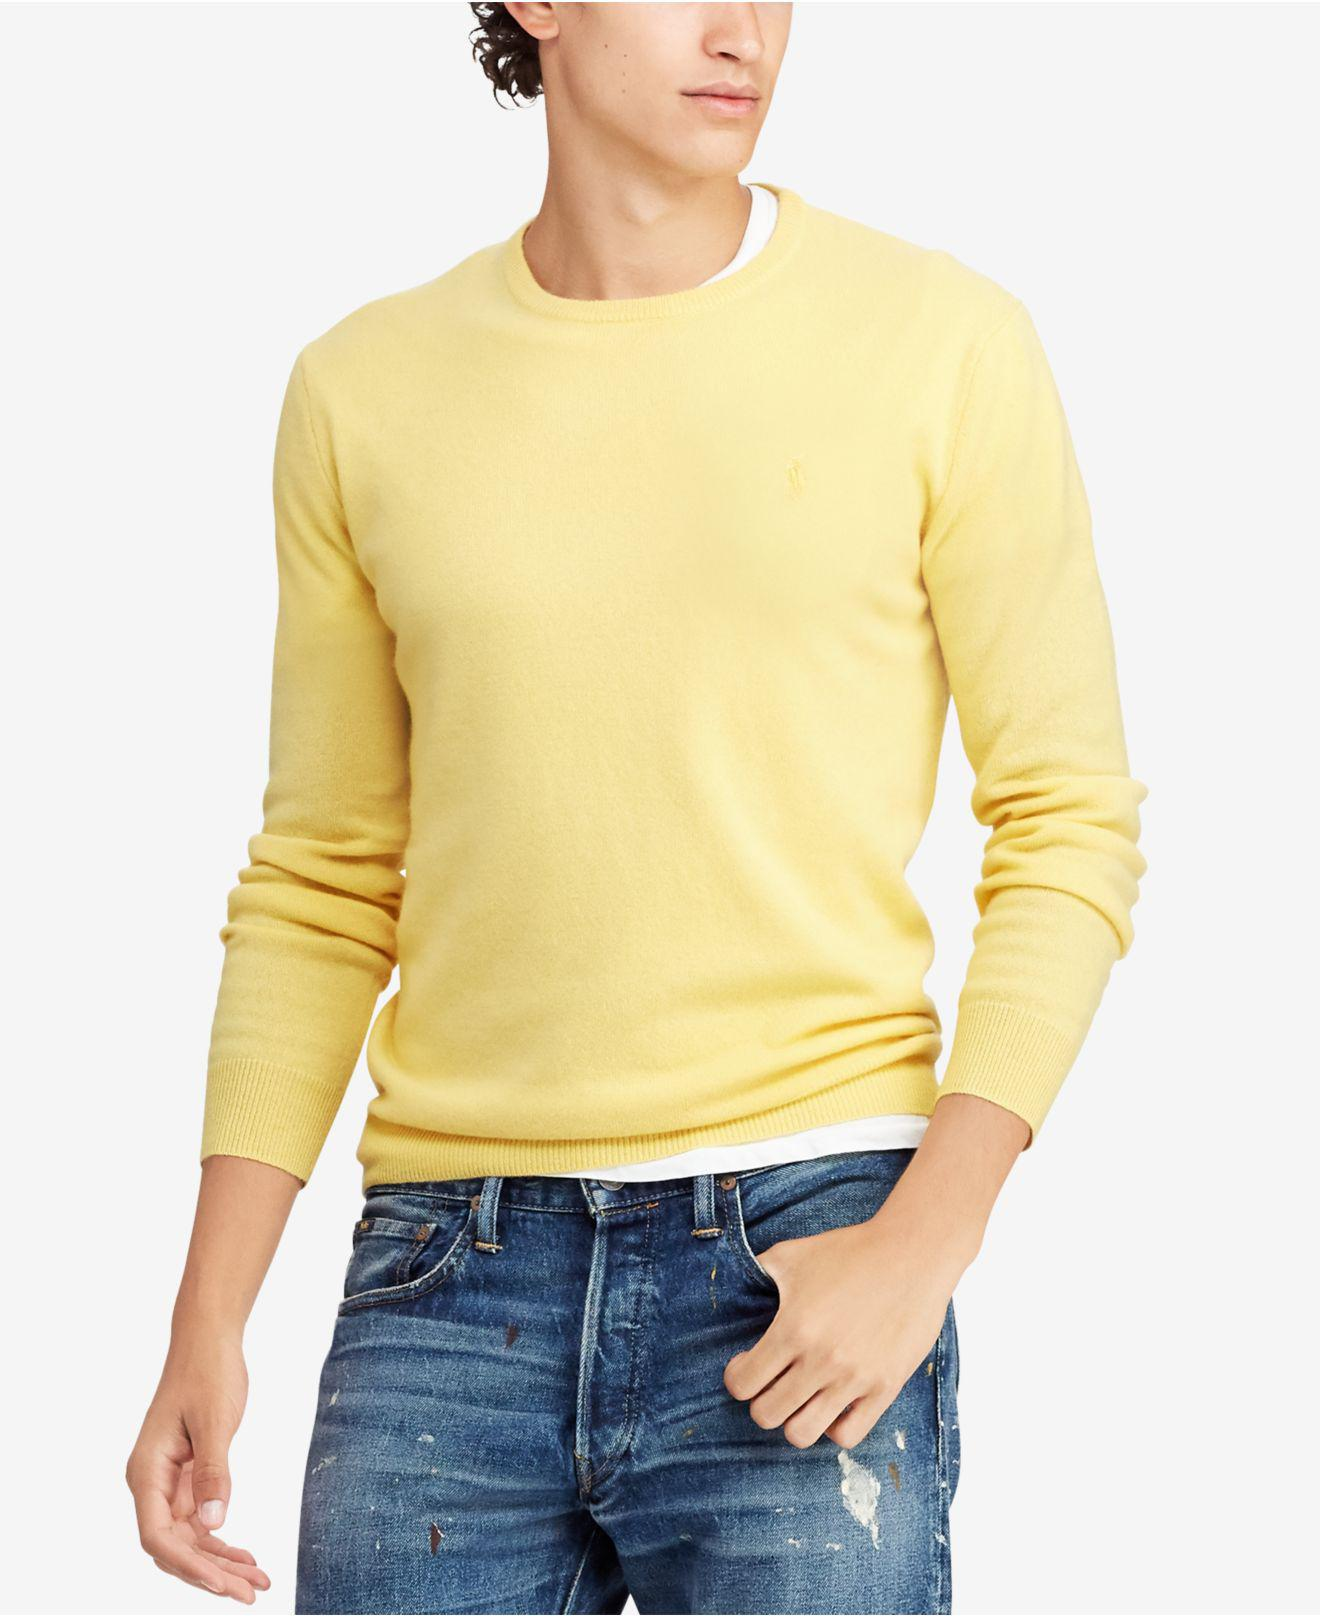 7b8cadae5 Lyst - Polo Ralph Lauren Cashmere Crew Neck Sweater in Yellow for Men